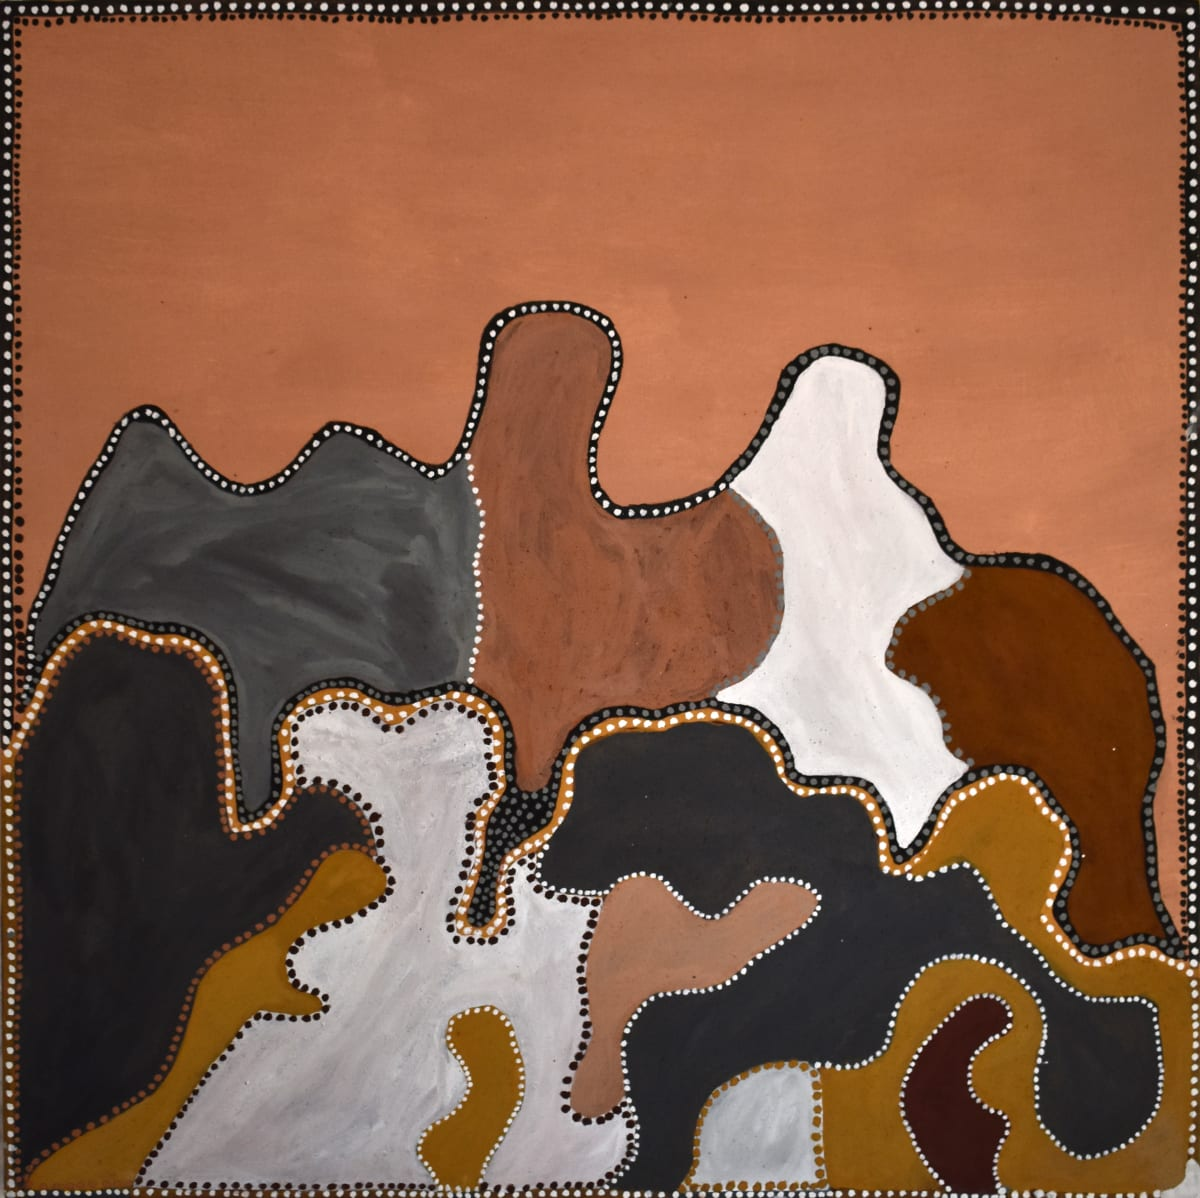 Rusty Peters Billimack, 2019 Natural ochre & pigment on canvas 120 x 120 cm